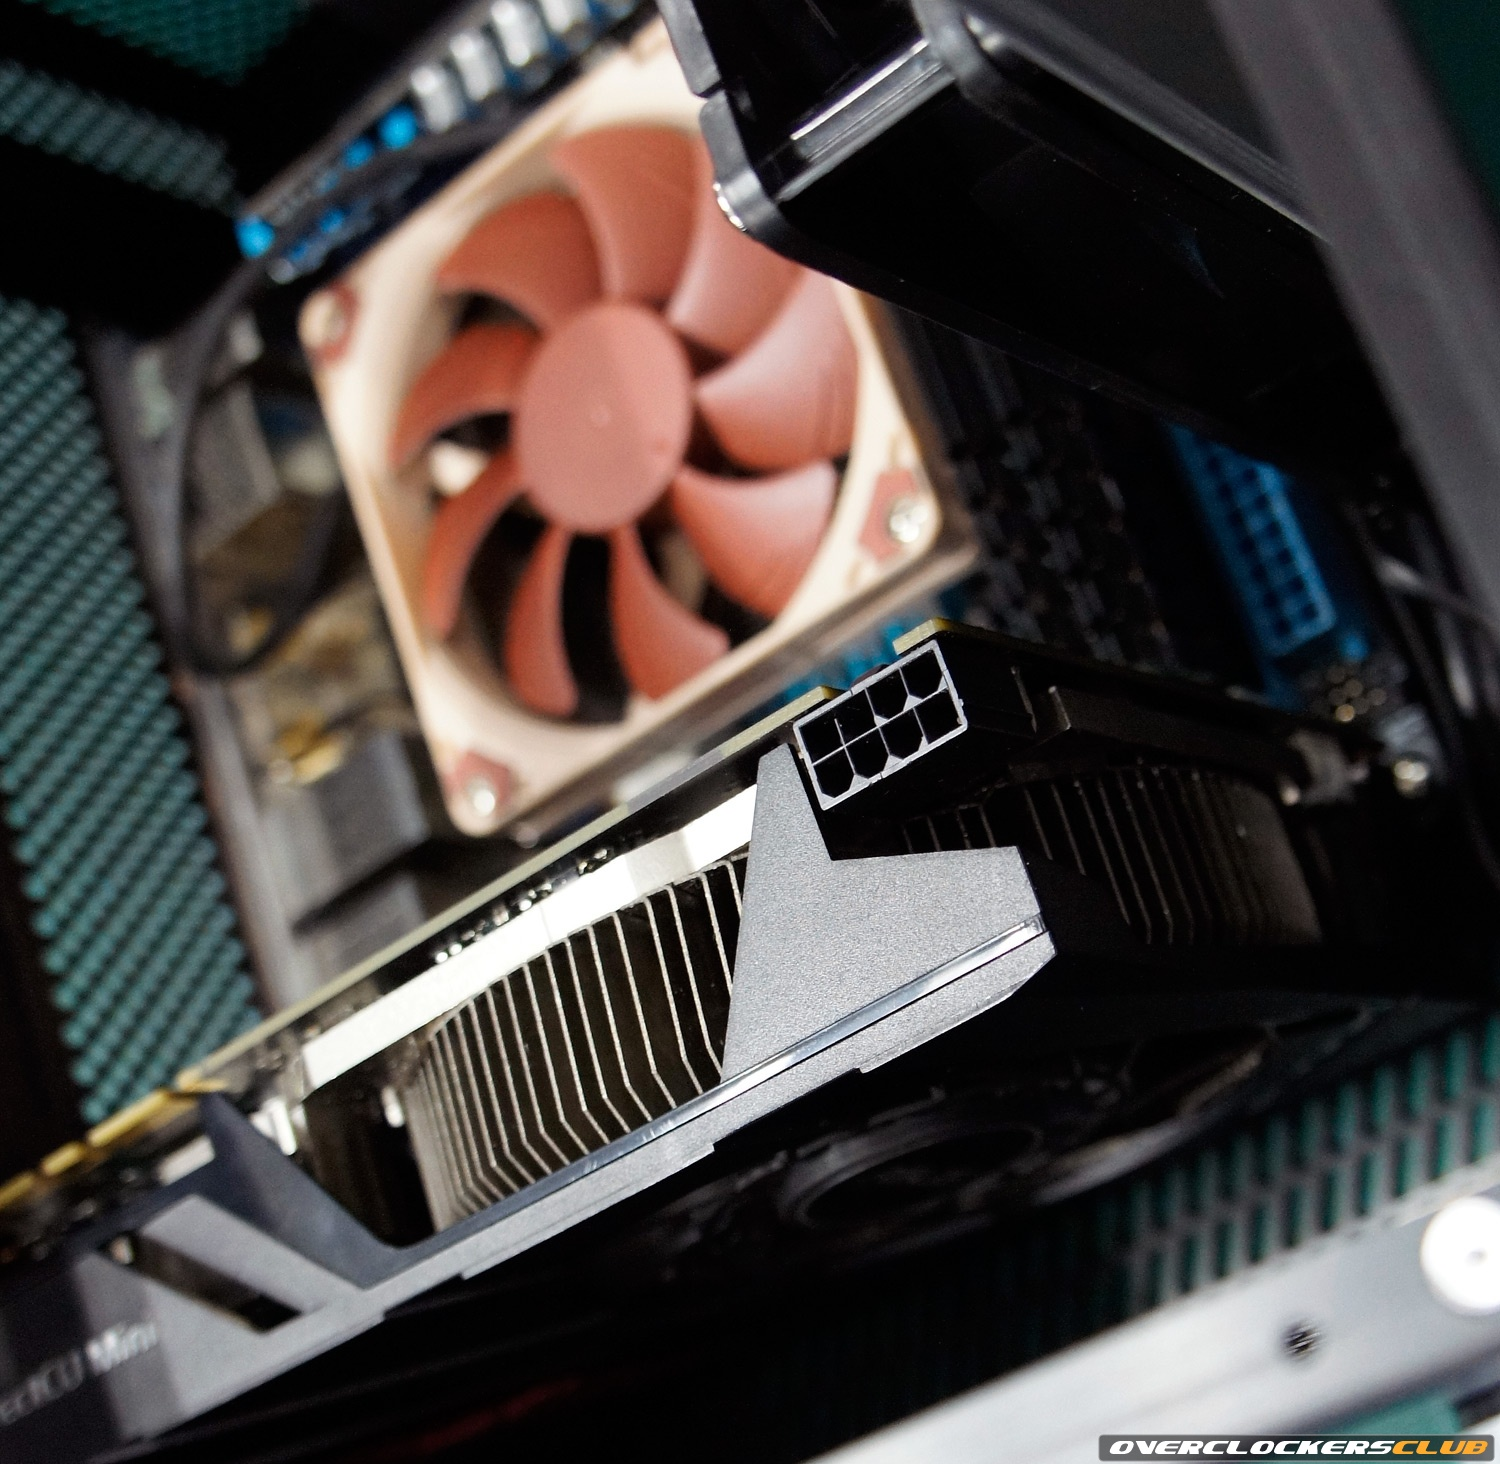 ASUS GTX 670 DirectCU Mini: Small but Powerful